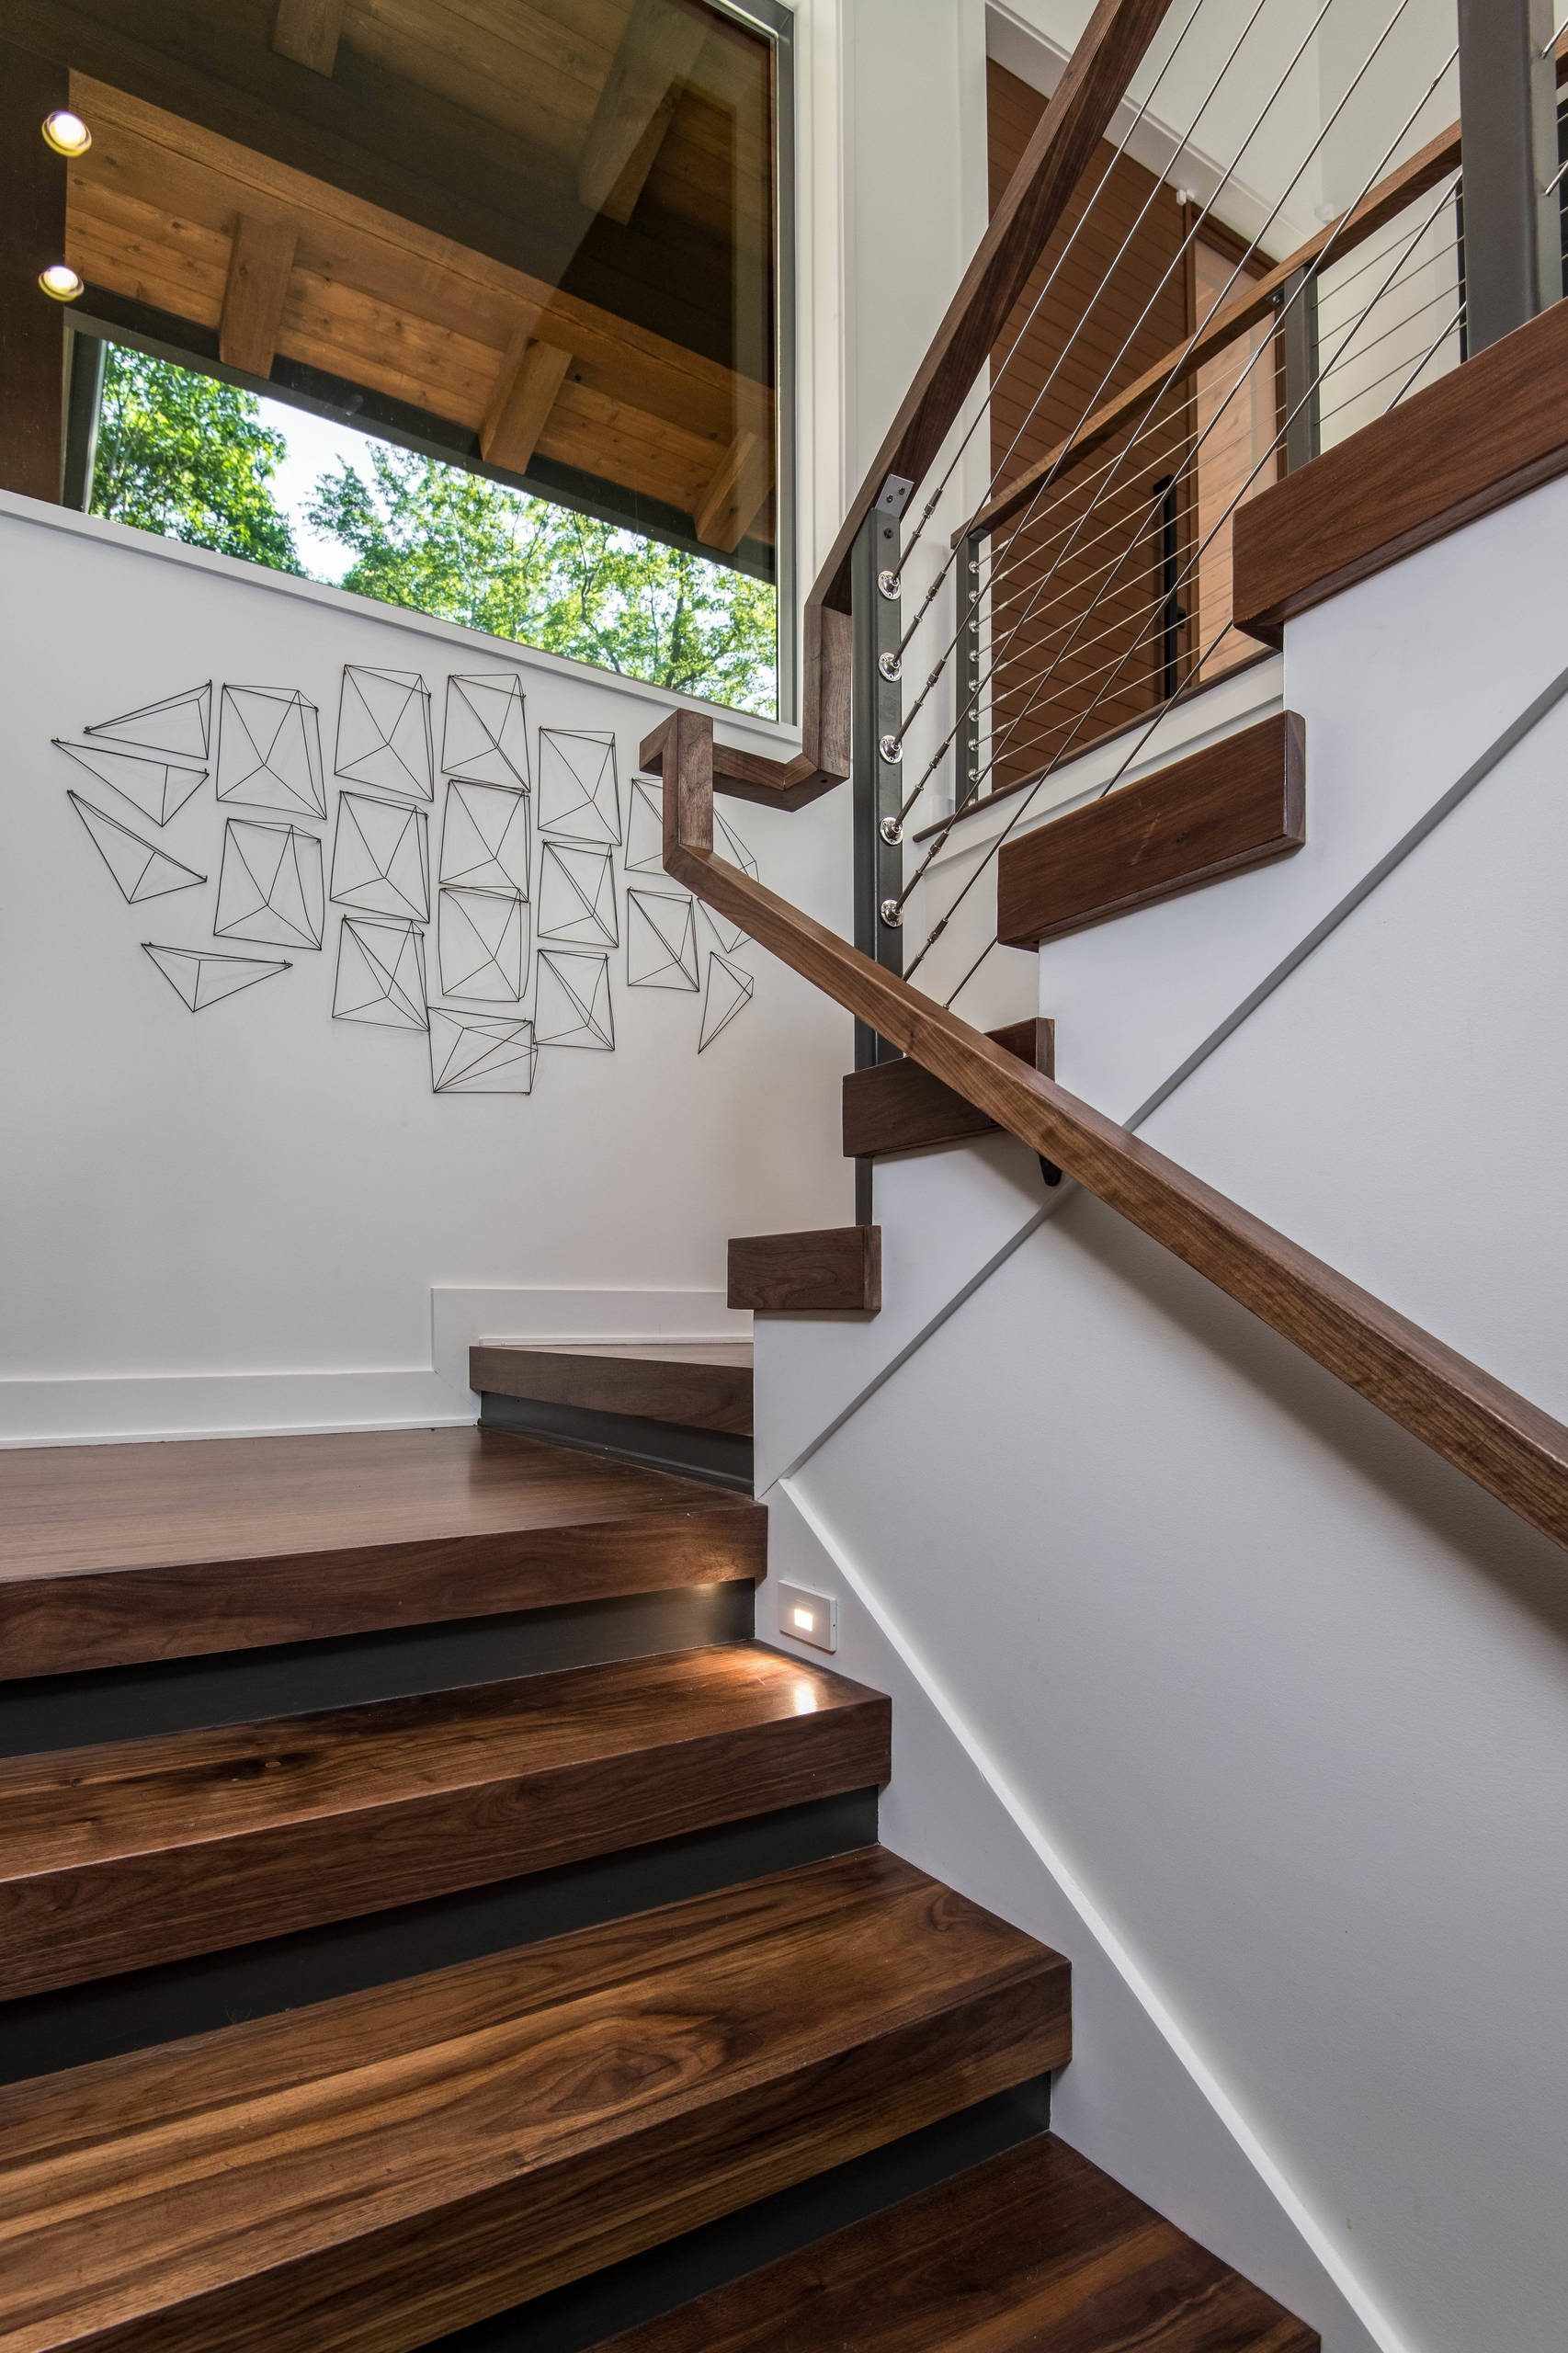 75 Beautiful Modern Staircase Pictures Ideas September 2020   Exterior Staircase Designs For Indian Homes   Elevation   Indian Style   Combination   Front Entrance Outdoor Staircase   Wall